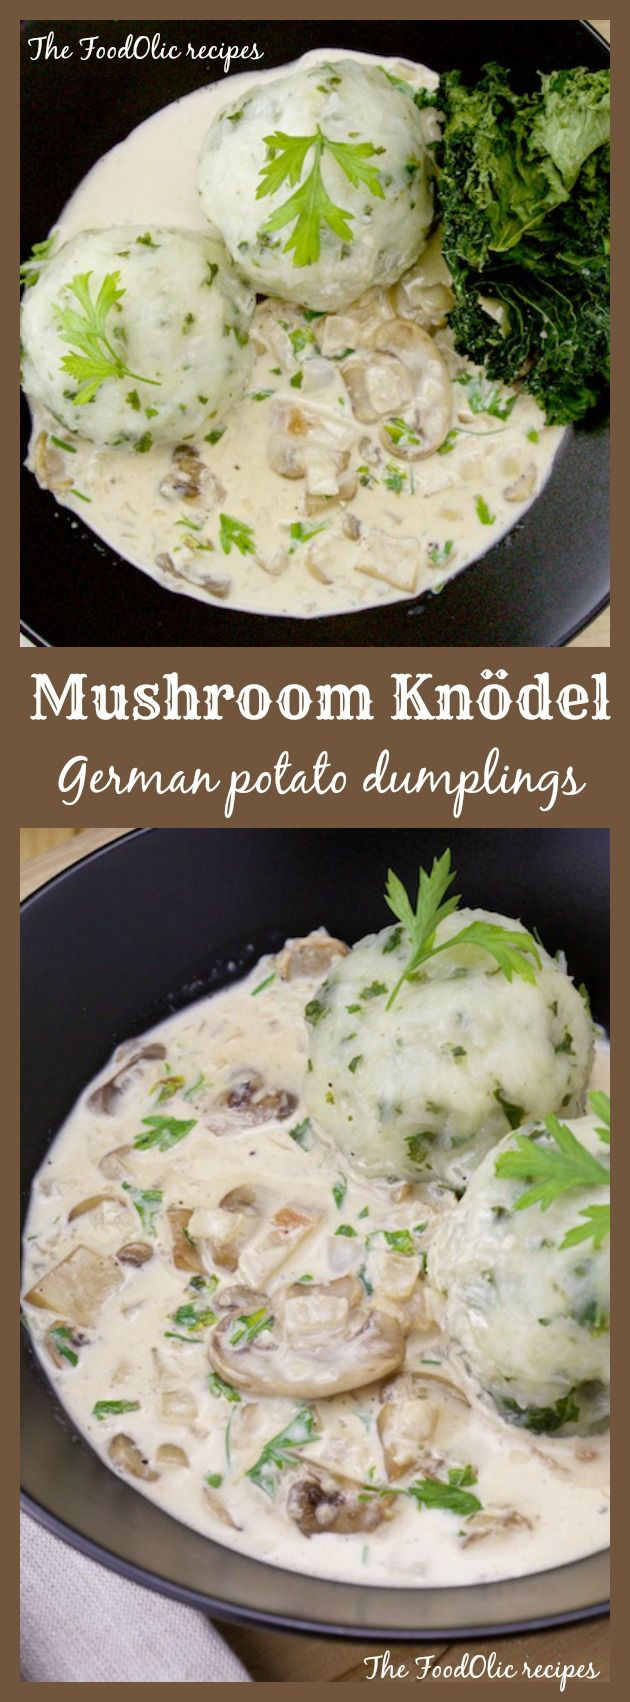 On my way back from vacation in Germany, I had to use the next week to try out some of my favorite German recipes. German cuisine is often related to meat and potatoes, well this recipe is no excep…